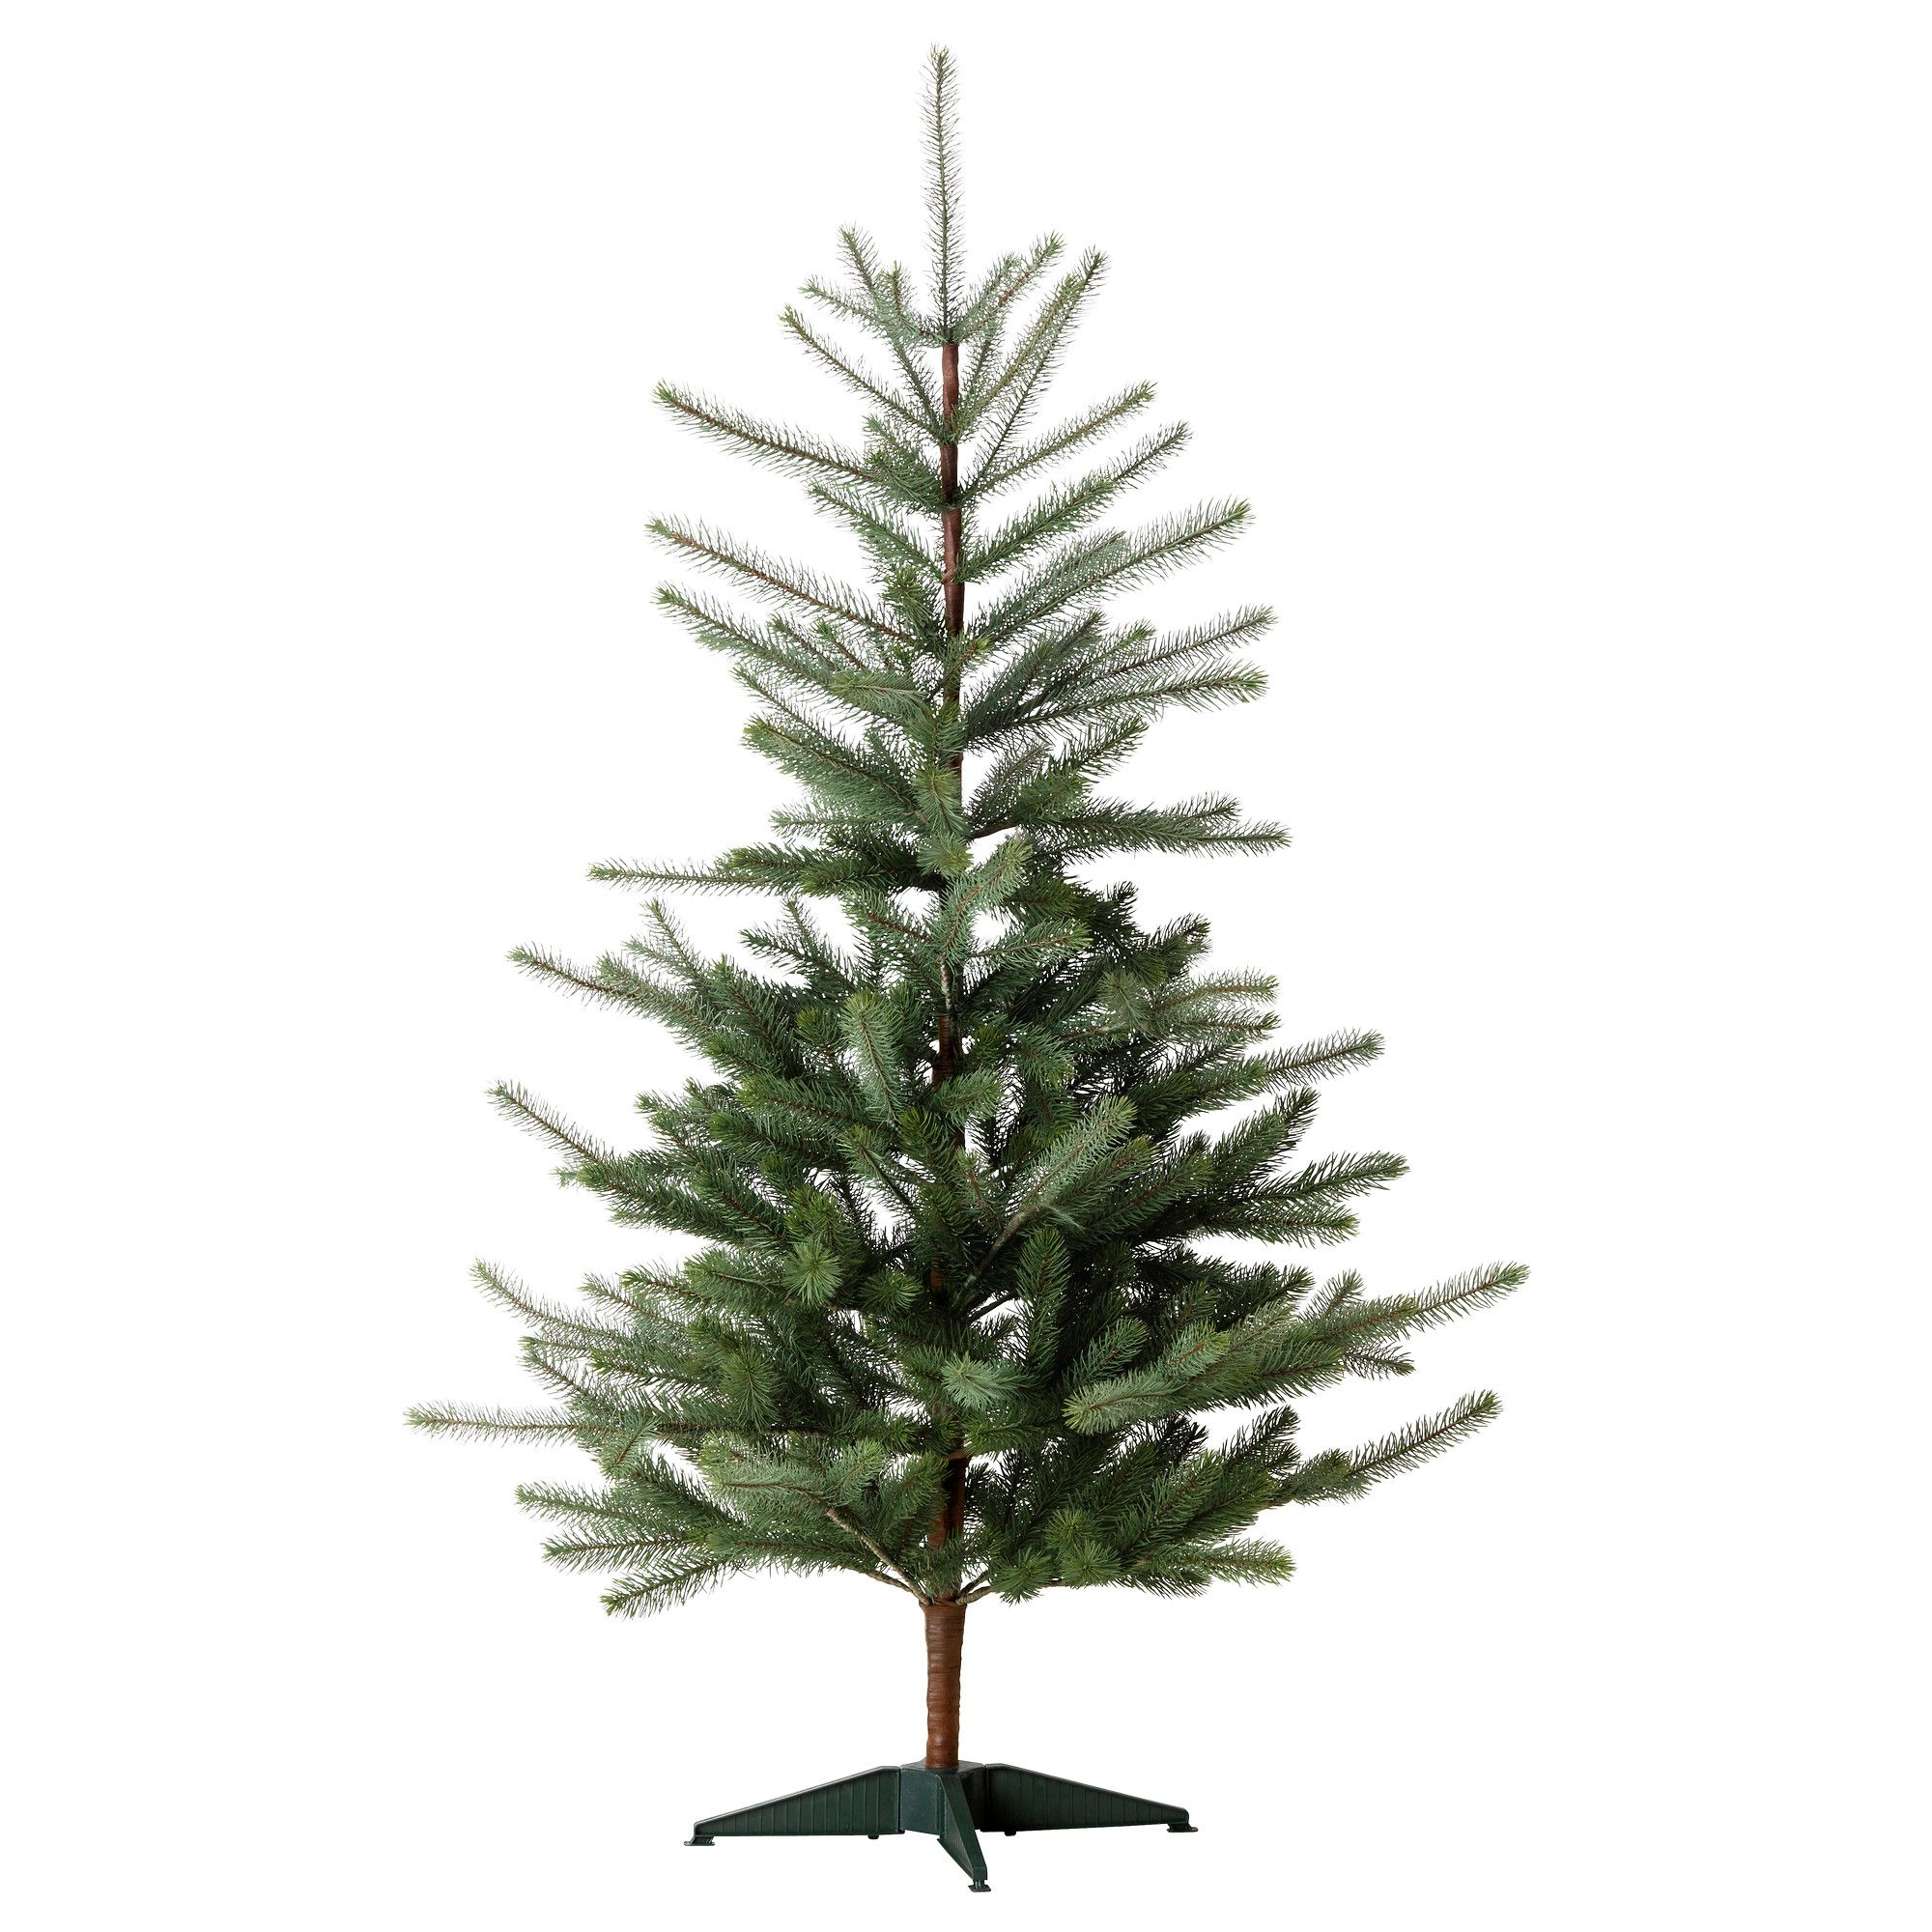 Lifelike Plants Fejka Ikea Artificial Plant Christmas Tree Lifelike